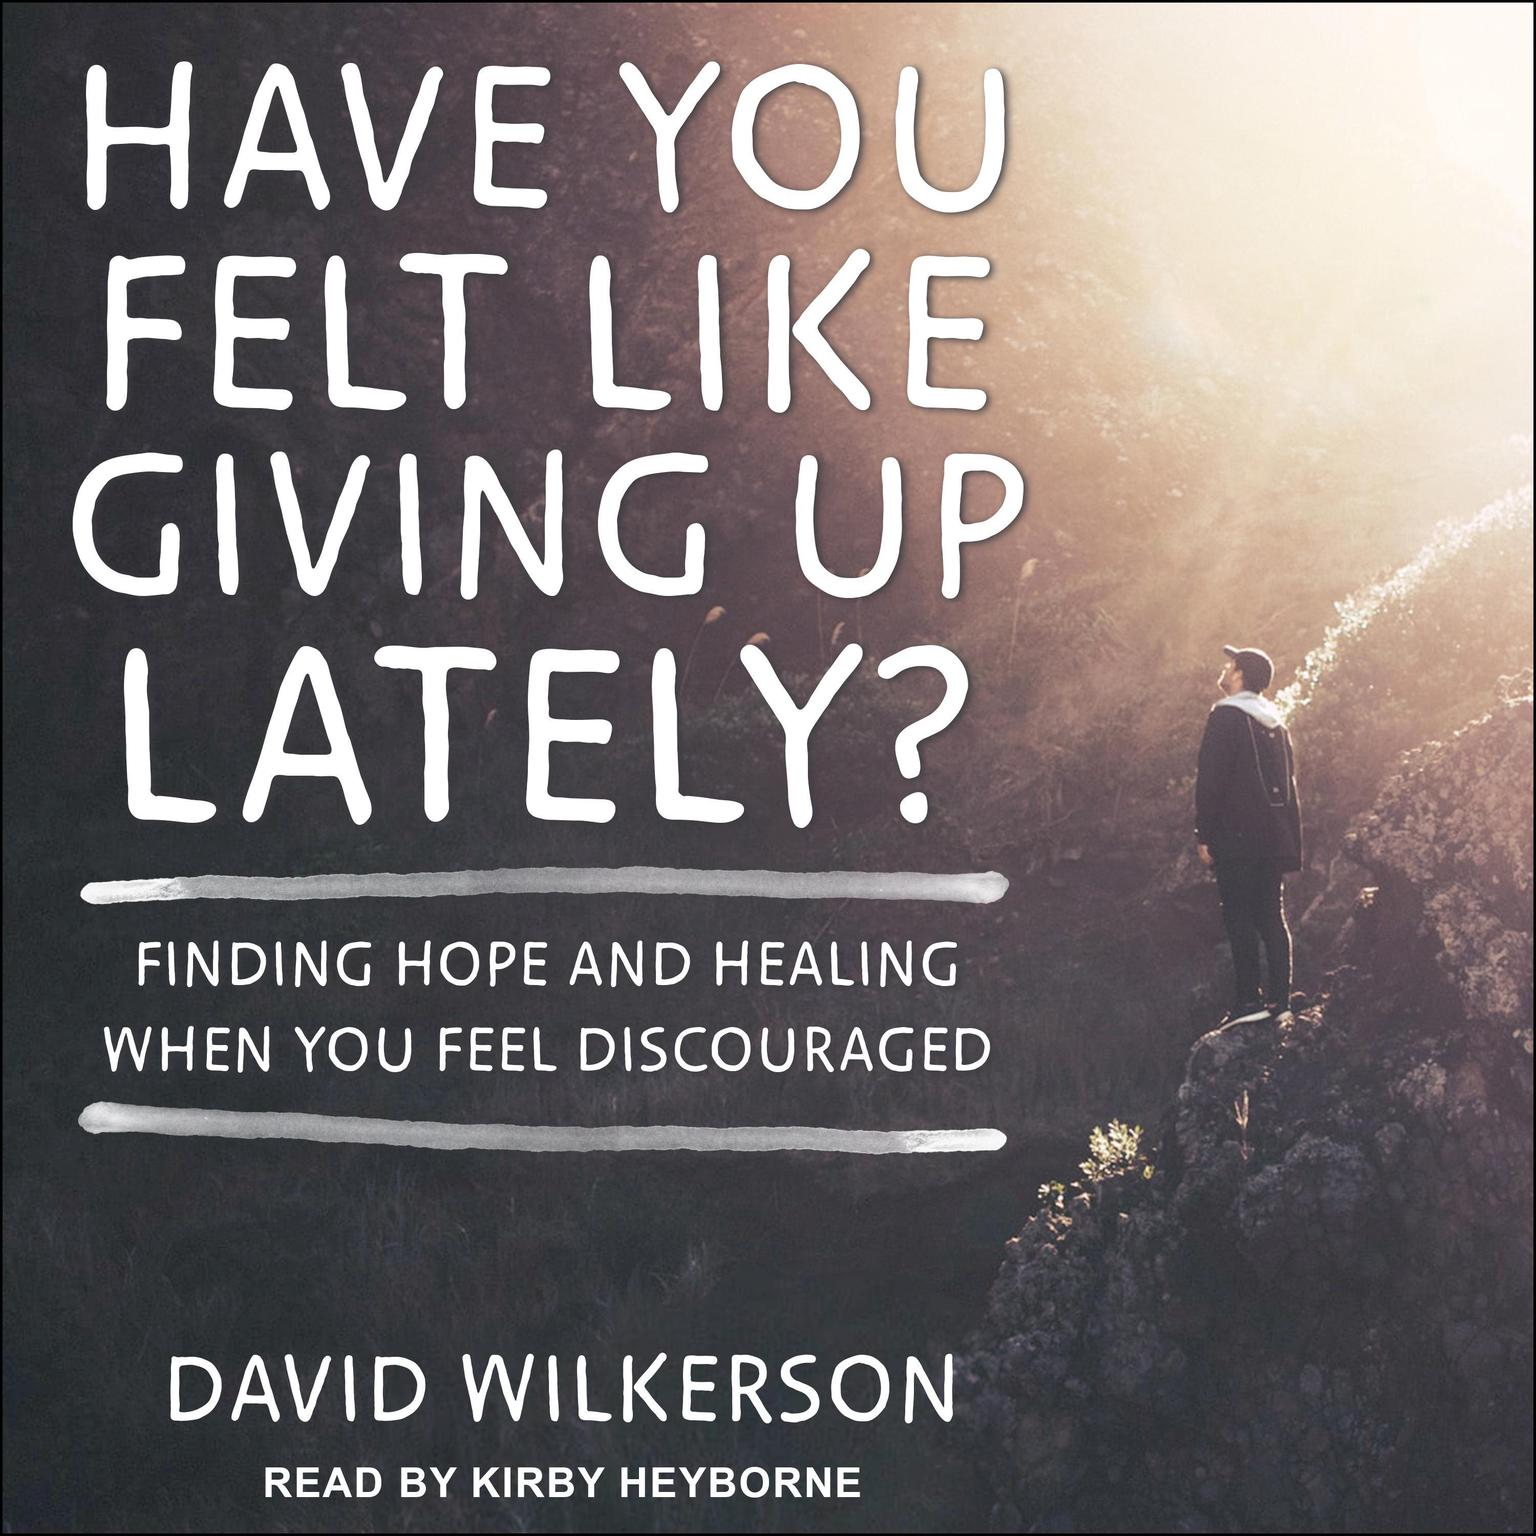 Have You Felt Like Giving Up Lately?: Finding Hope and Healing When You Feel Discouraged Audiobook, by David Wilkerson